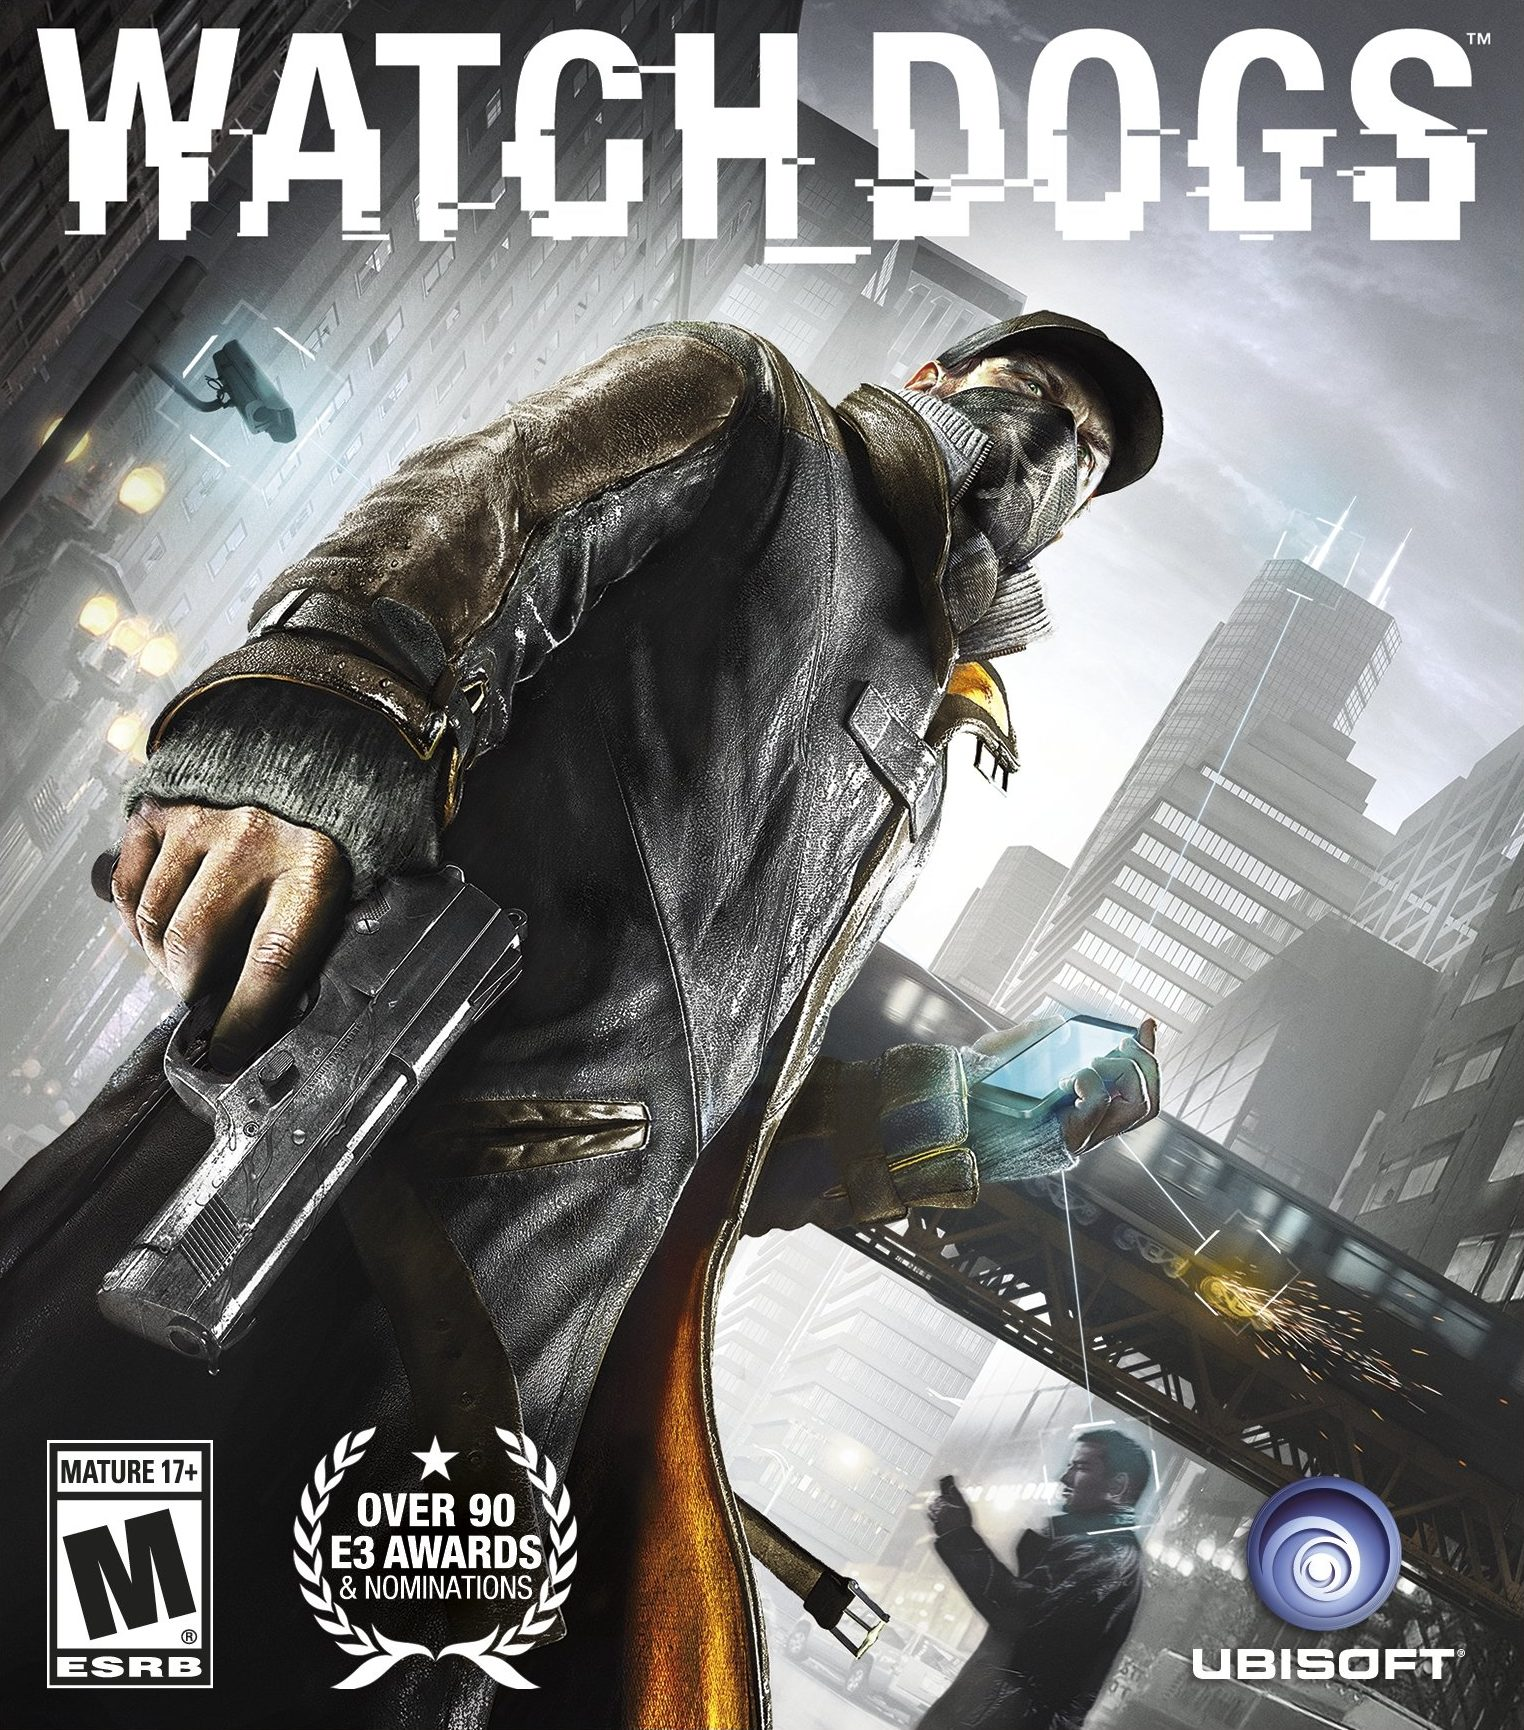 Watch Dogs Cover Art Game Preorders